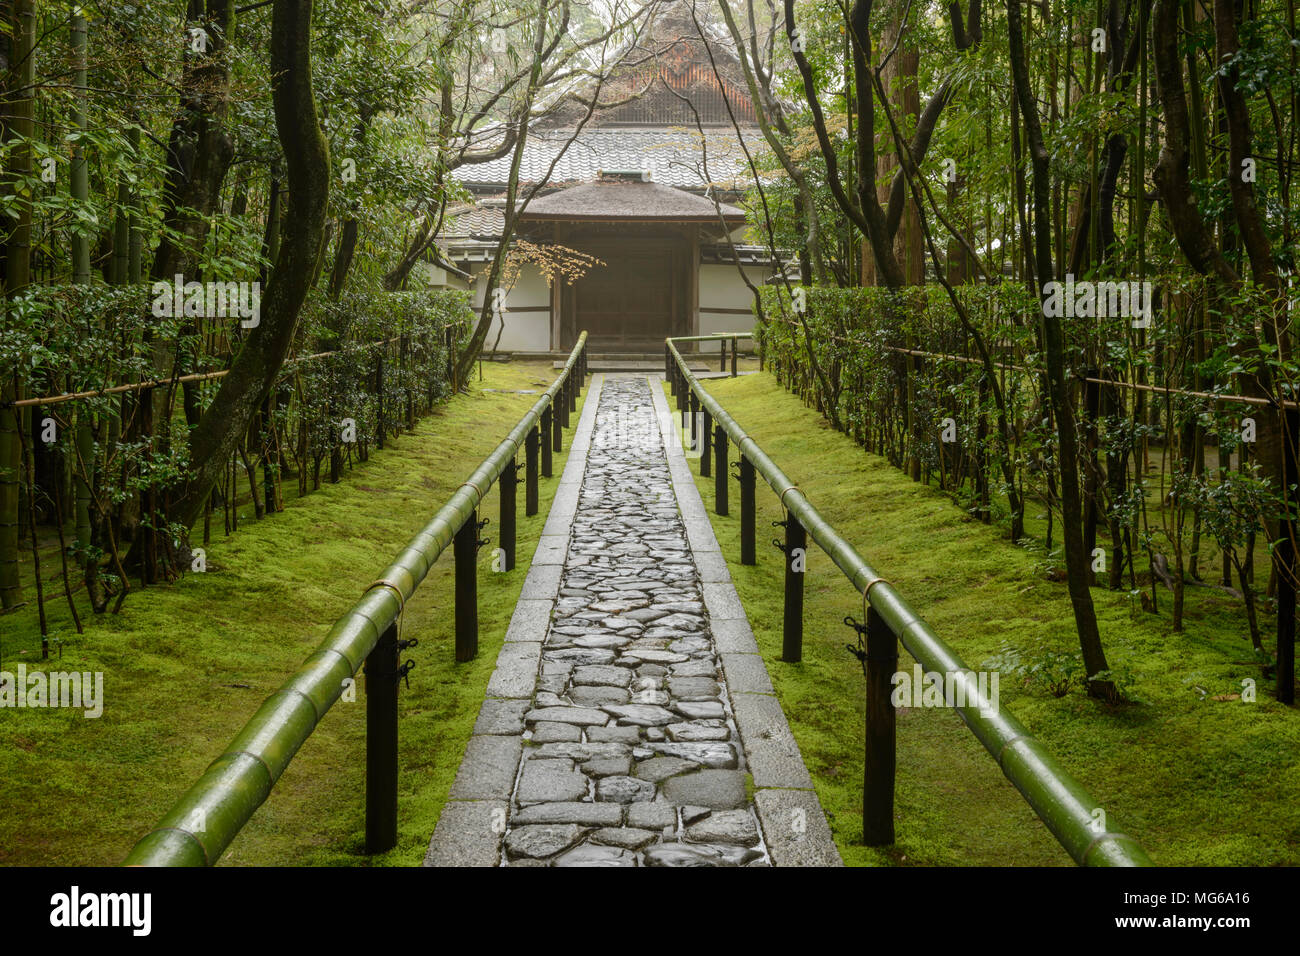 The entrance to Koto-in Subtemple, part of the Daitoku-ji Temple, in Kyoto, Japan. - Stock Image